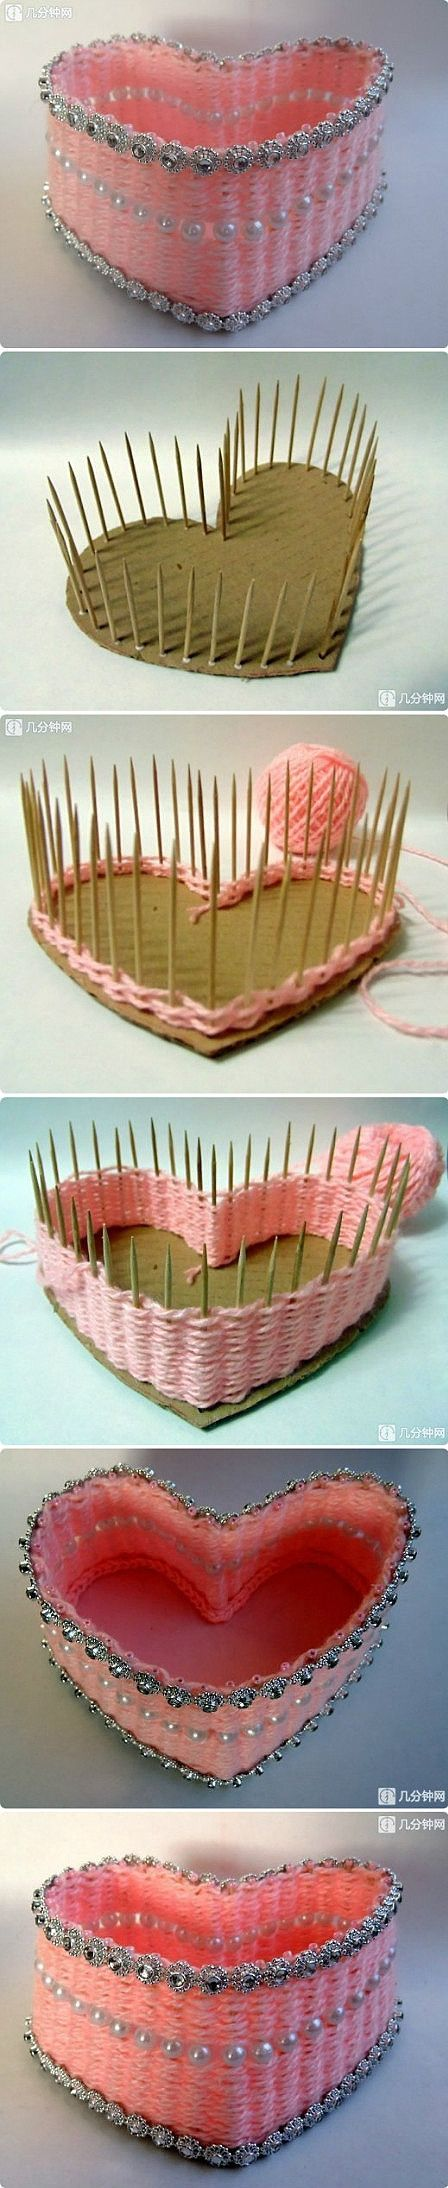 heart shaped box with yarn